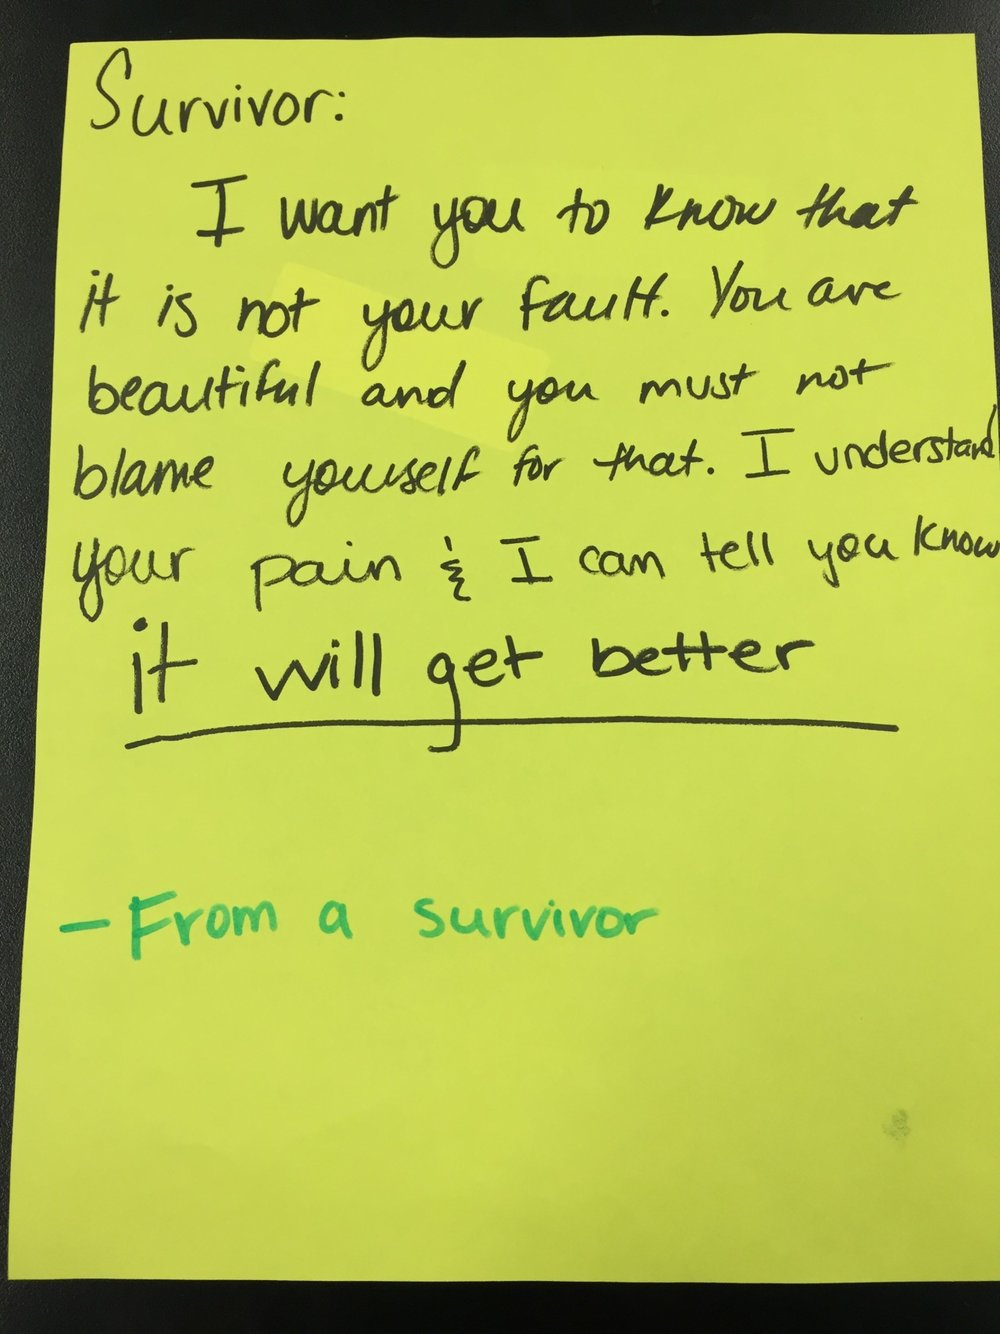 Survivor:   I want you to know that it is not your fault. You are beautiful and you must not blame yourself for that. I understand your pain and I can tell you know it will get better.   -from a survivor